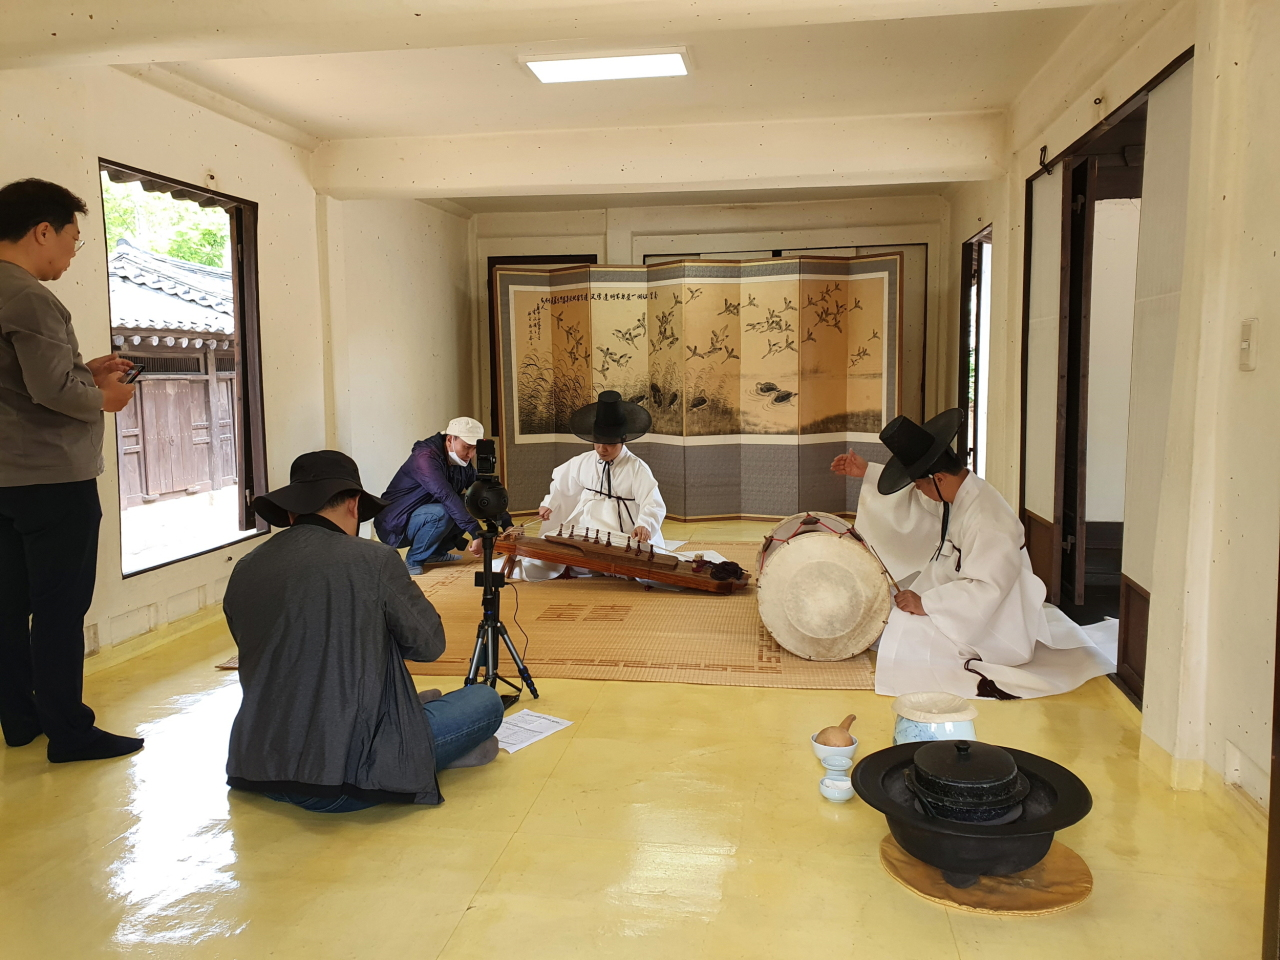 Recording of ajaeng sanjo (wide zither instrumental music) performance at Myungwon Folk Museum in northern Seoul. (National Gugak Center)